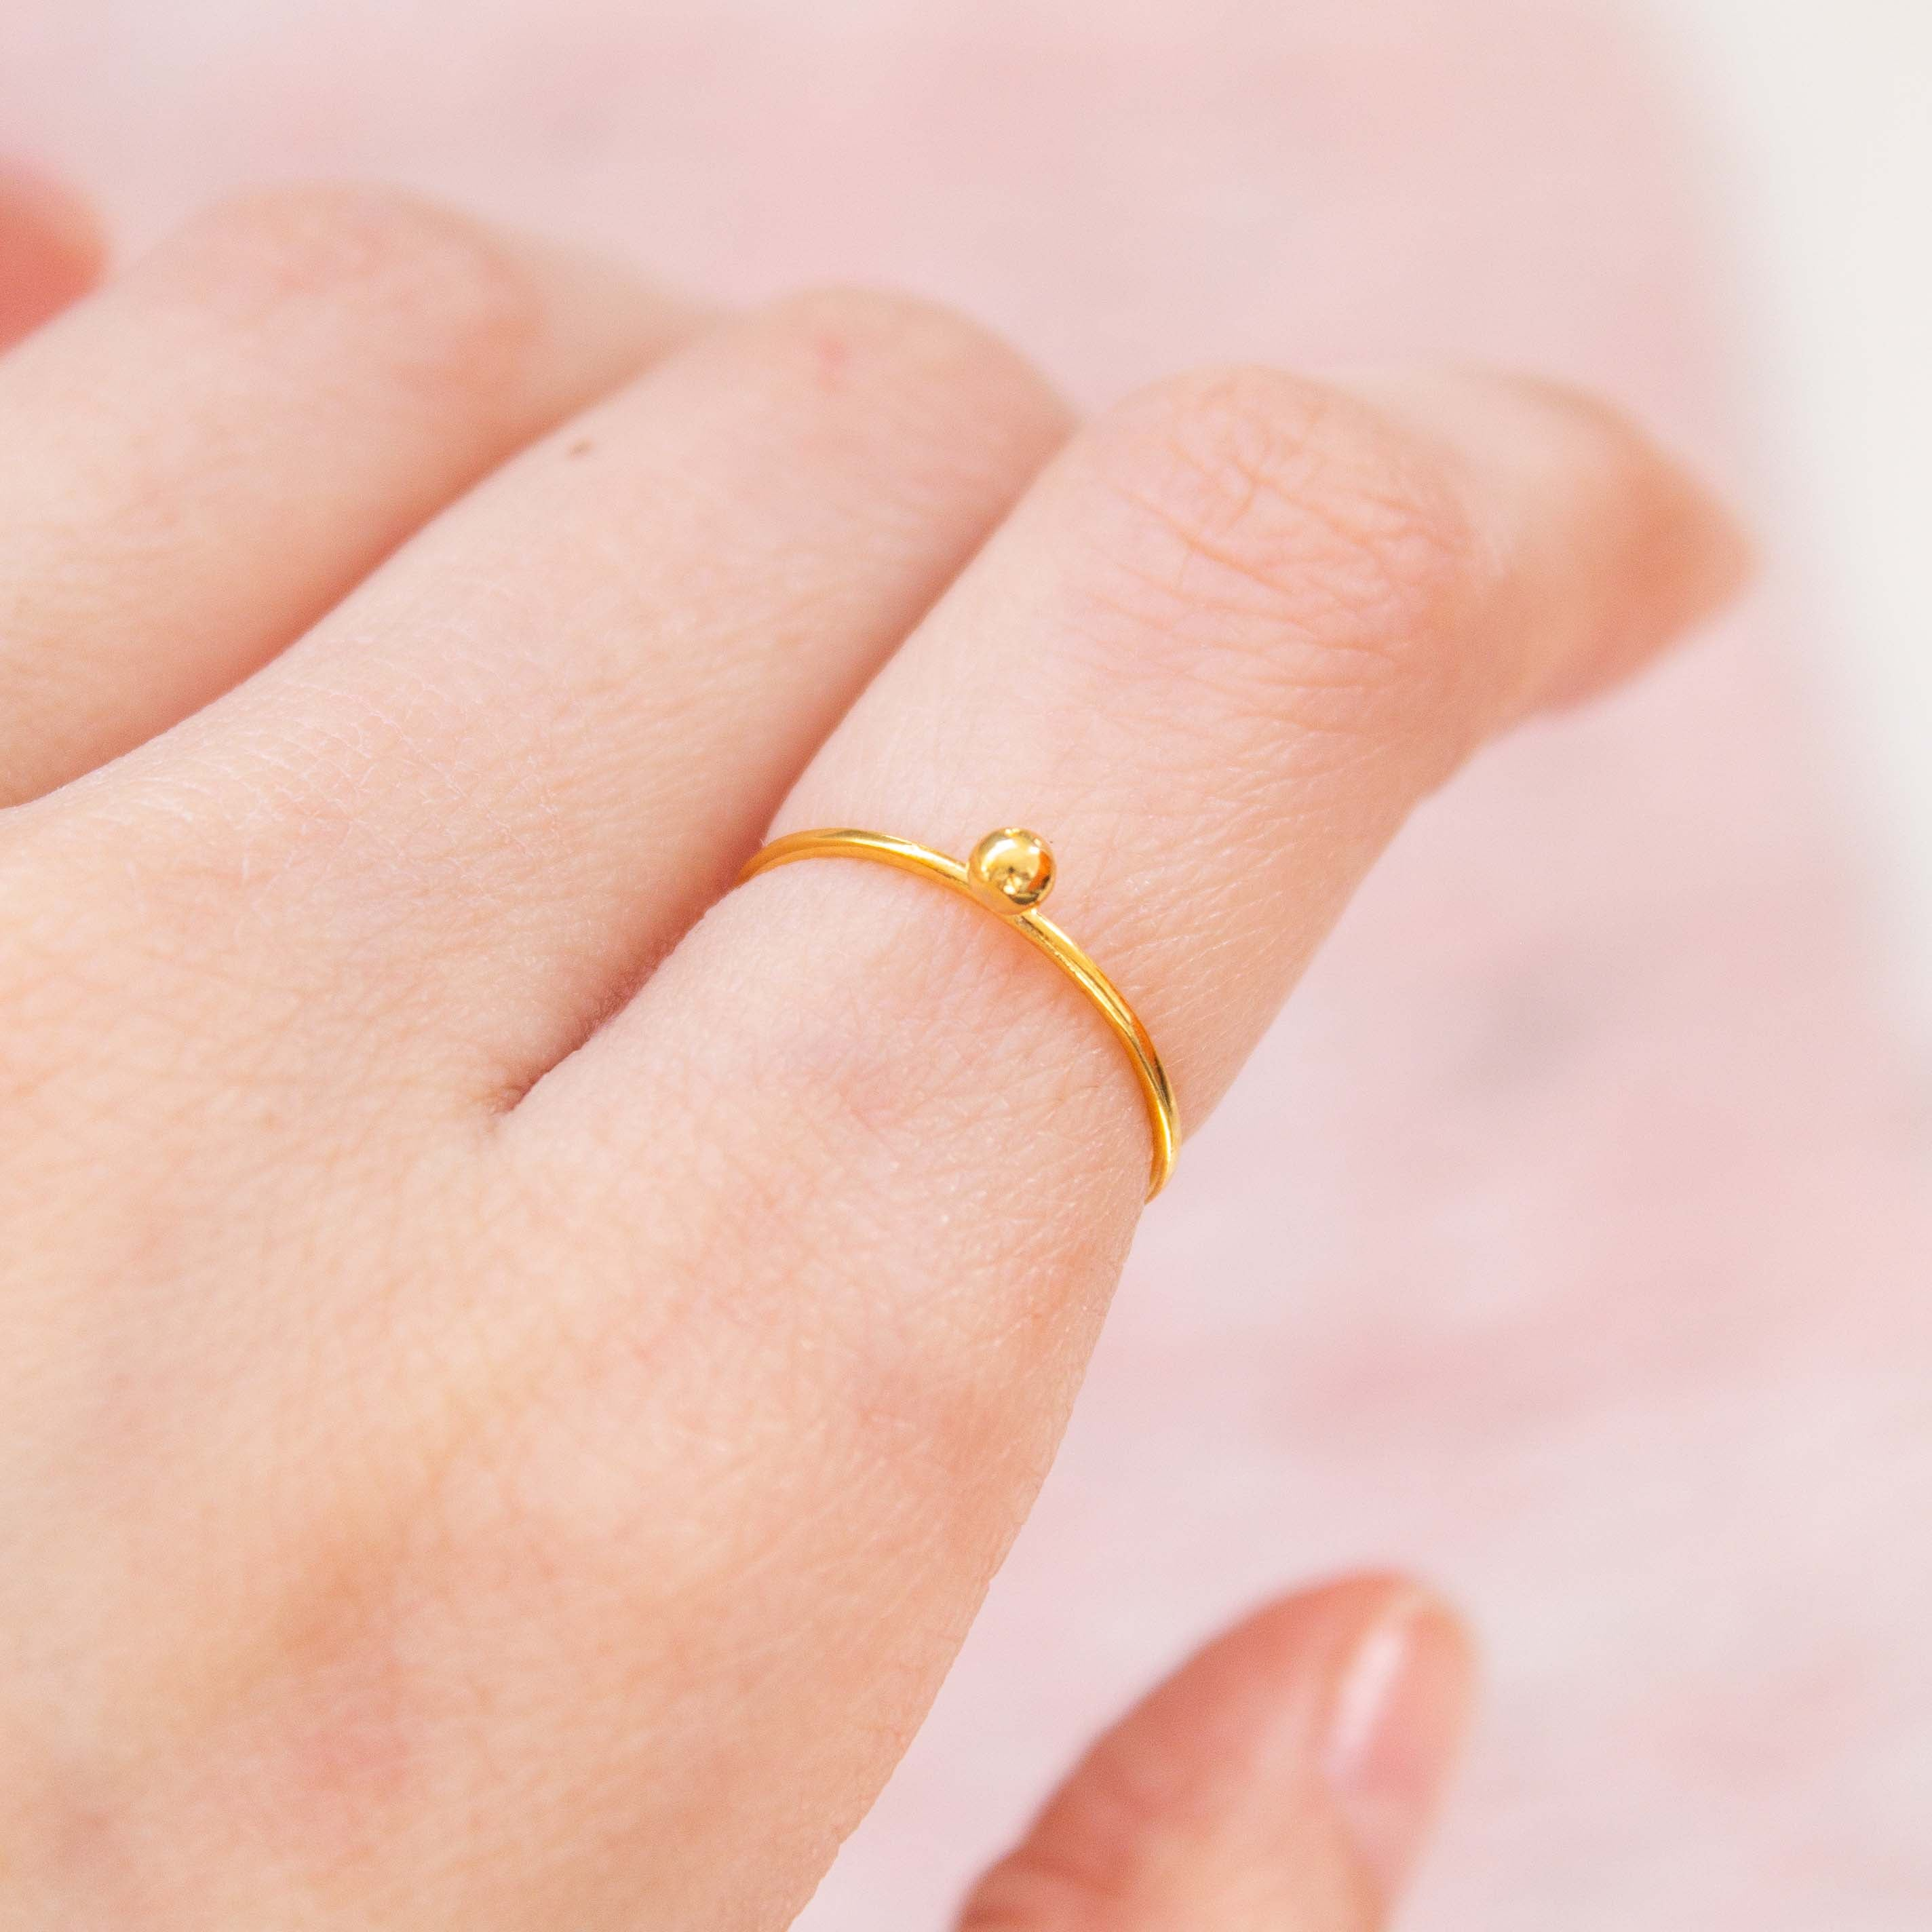 pico_jewellery_vermeil_stacking_sphere_dot_minimal_ring